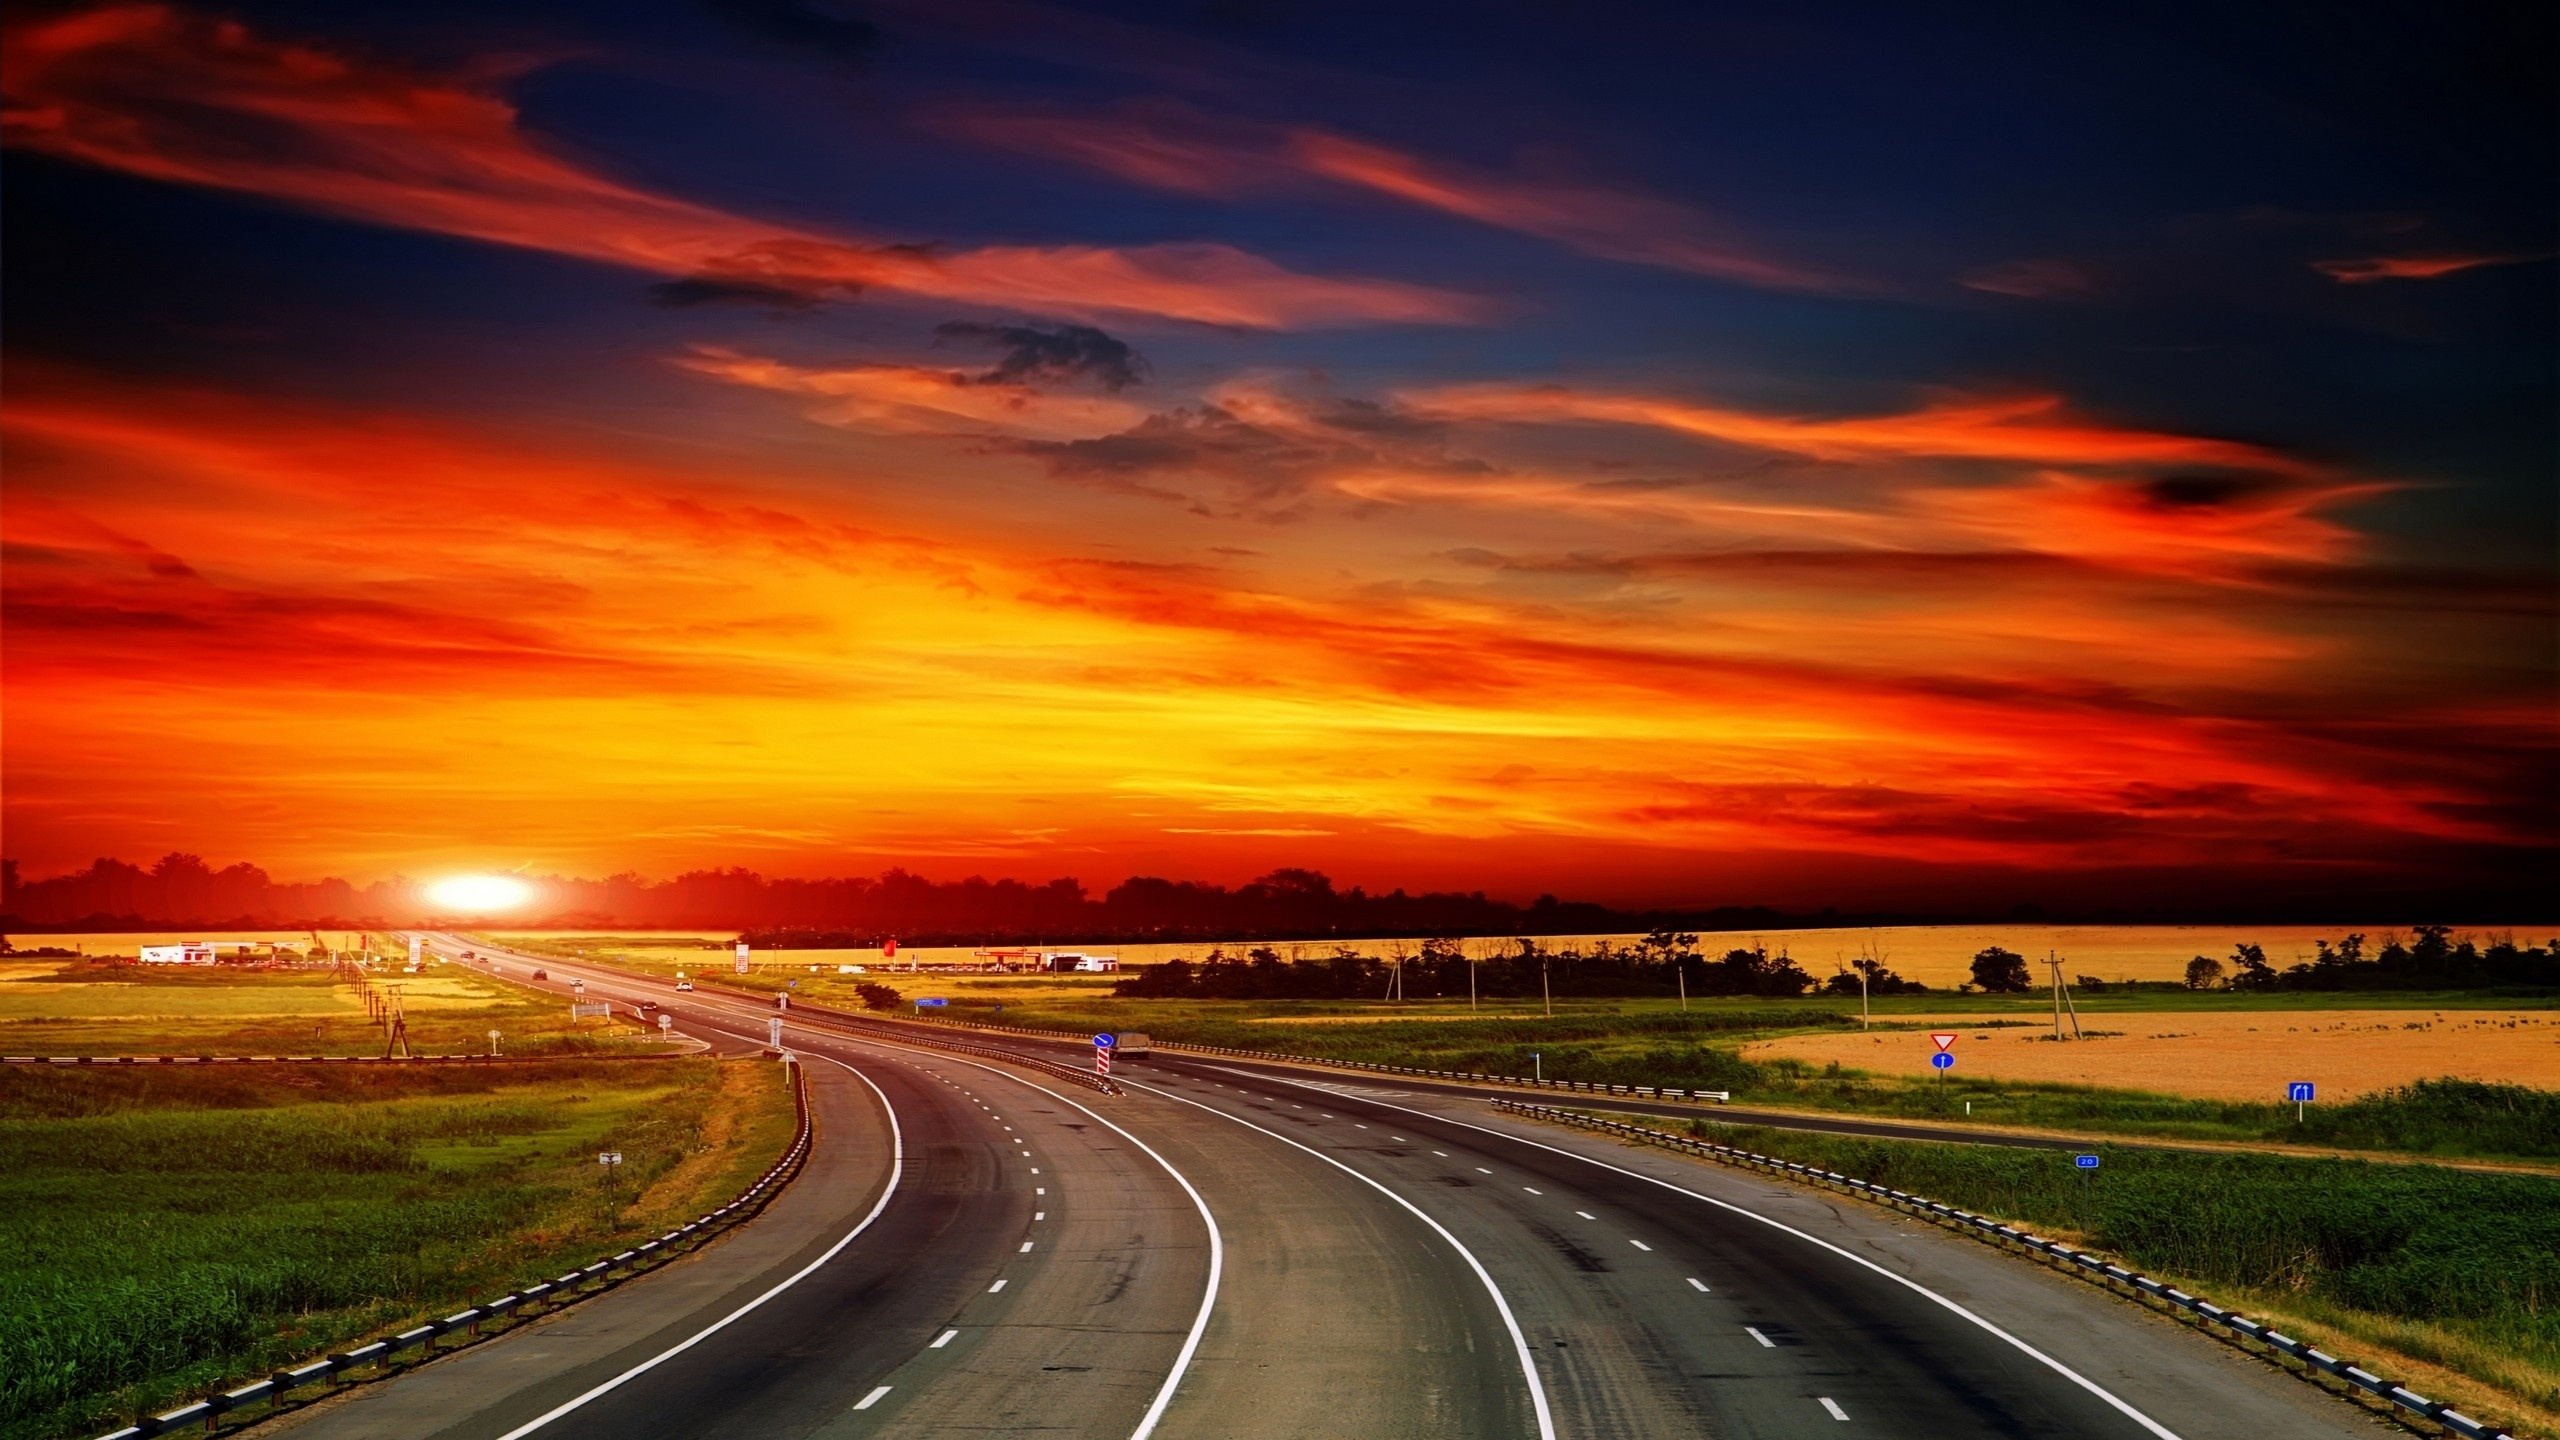 2560x1440 Sunset High Way Scenic Desktop PC And Mac Wallpaper